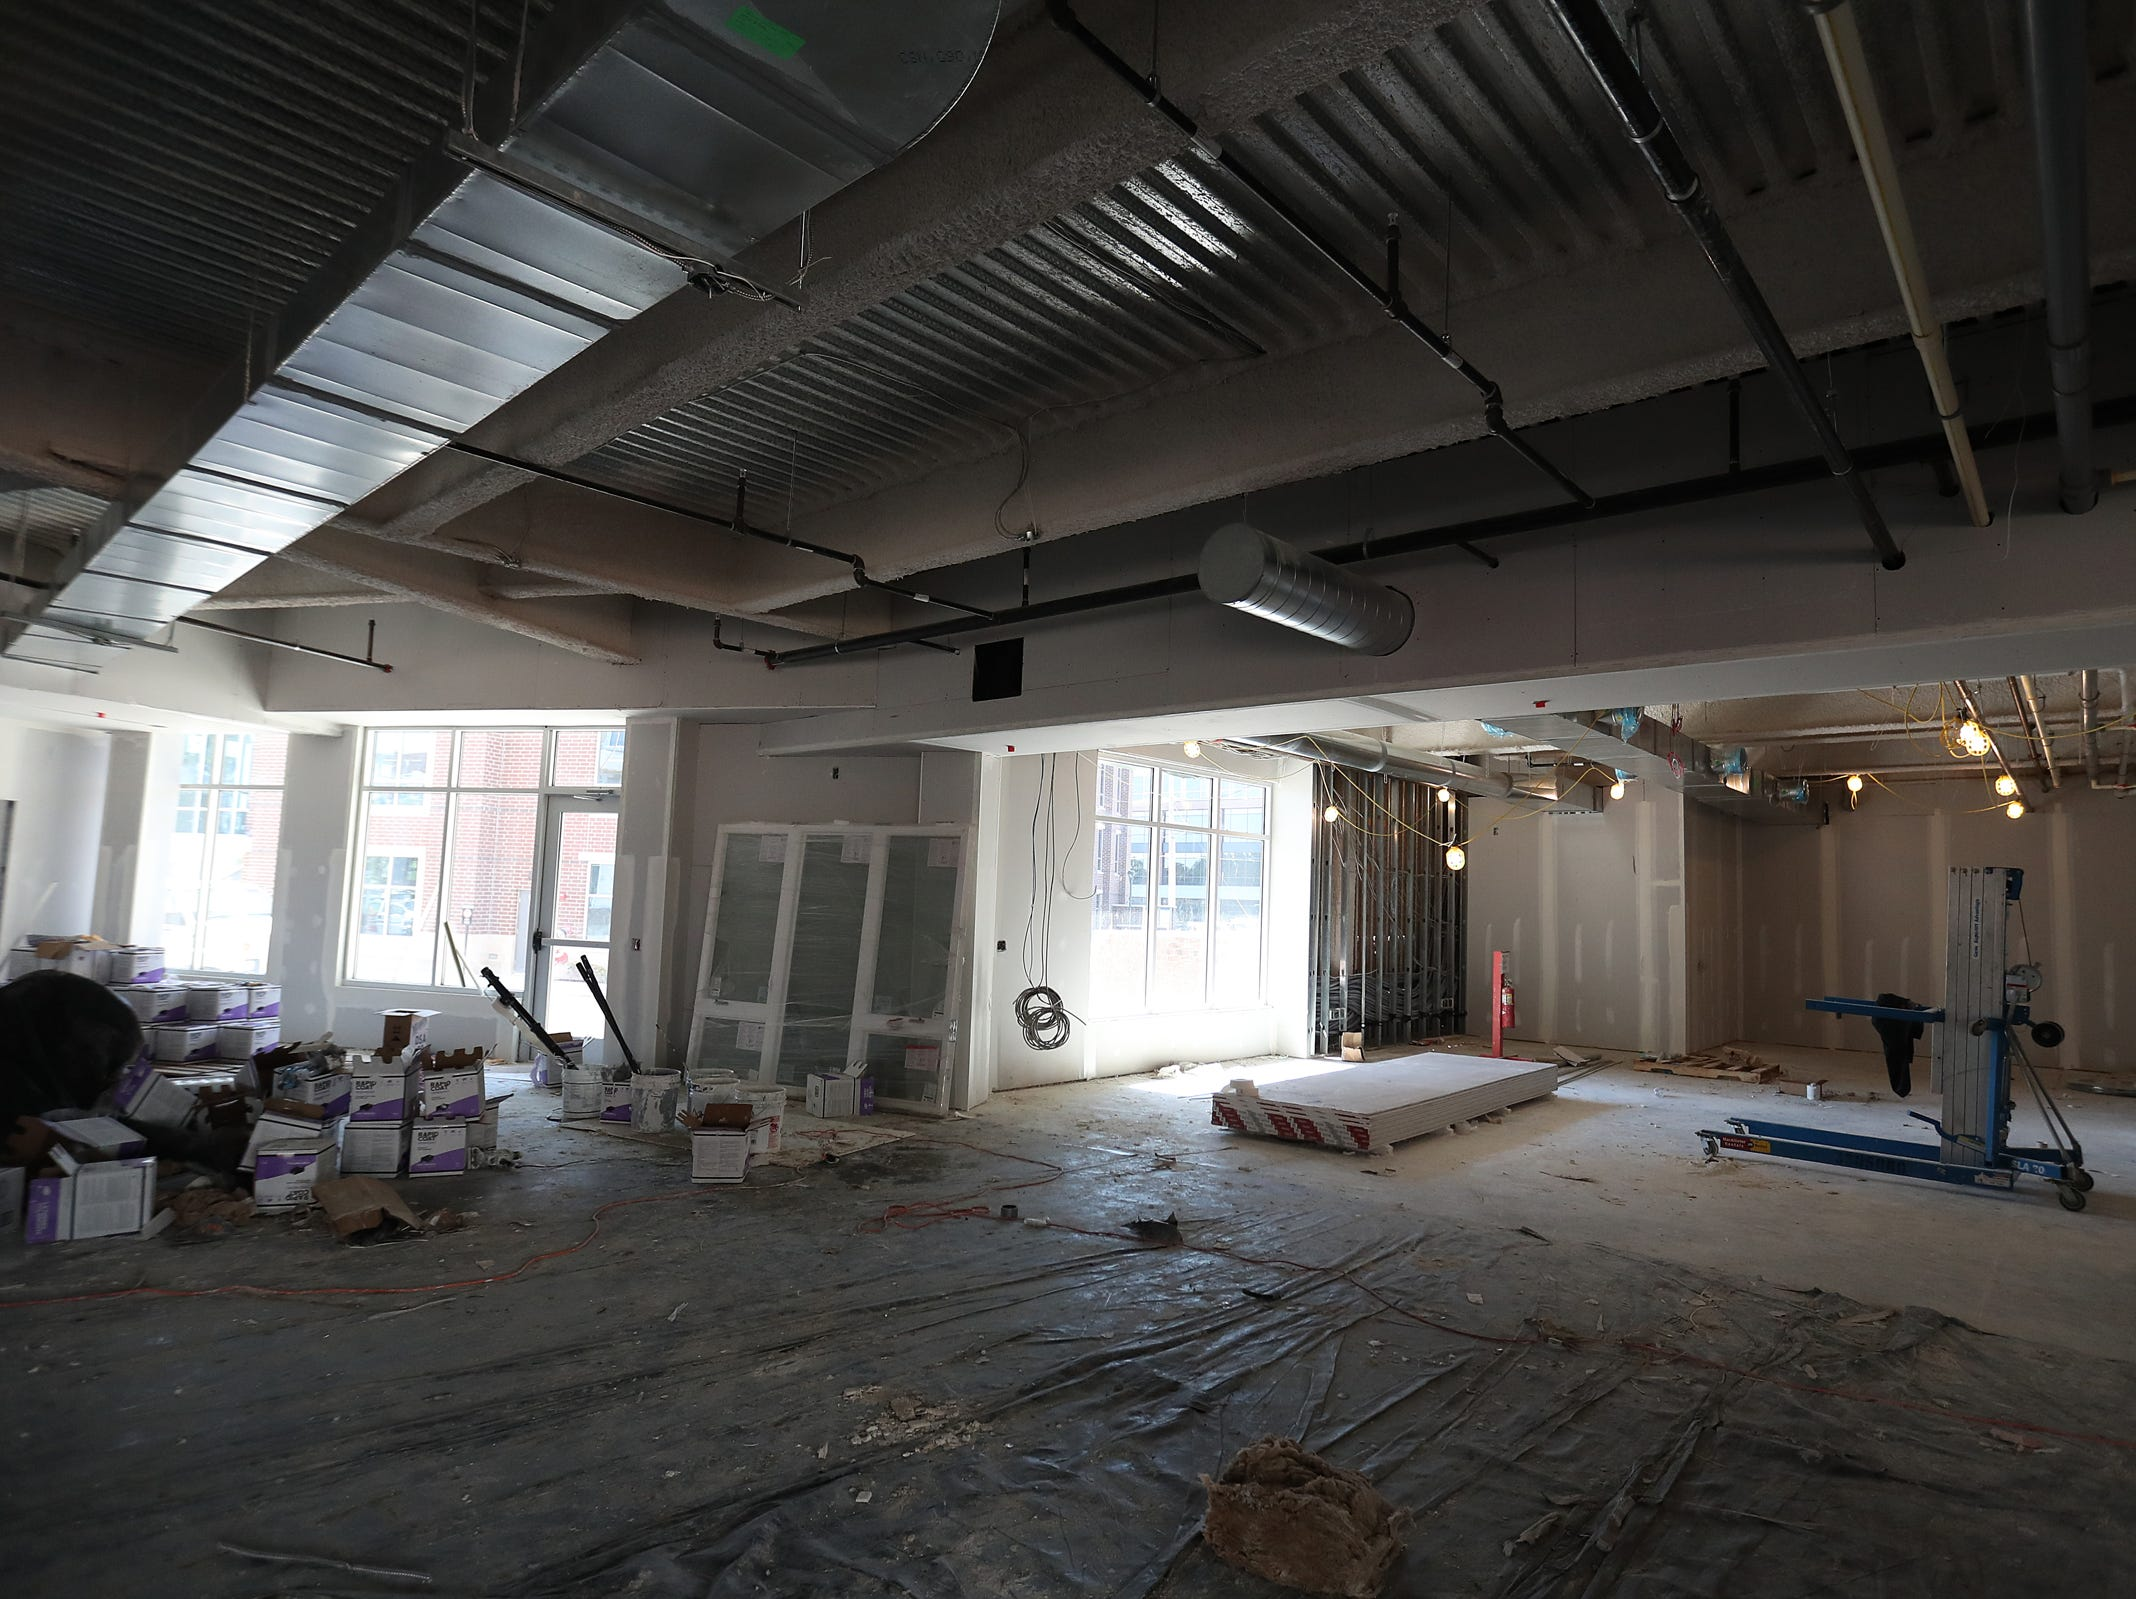 A mid-construction common area that will house a lounge, coffee bar, mail room, fitness rooms, conference rooms and more, in the Spark Apartments in Fishers, Ind., is seen on Friday, Sept. 14, 2018. The apartments, at North Street and Lantern road, will 200 offer one-, two- and three-bedroom apartment units and 11 live/work spaces.